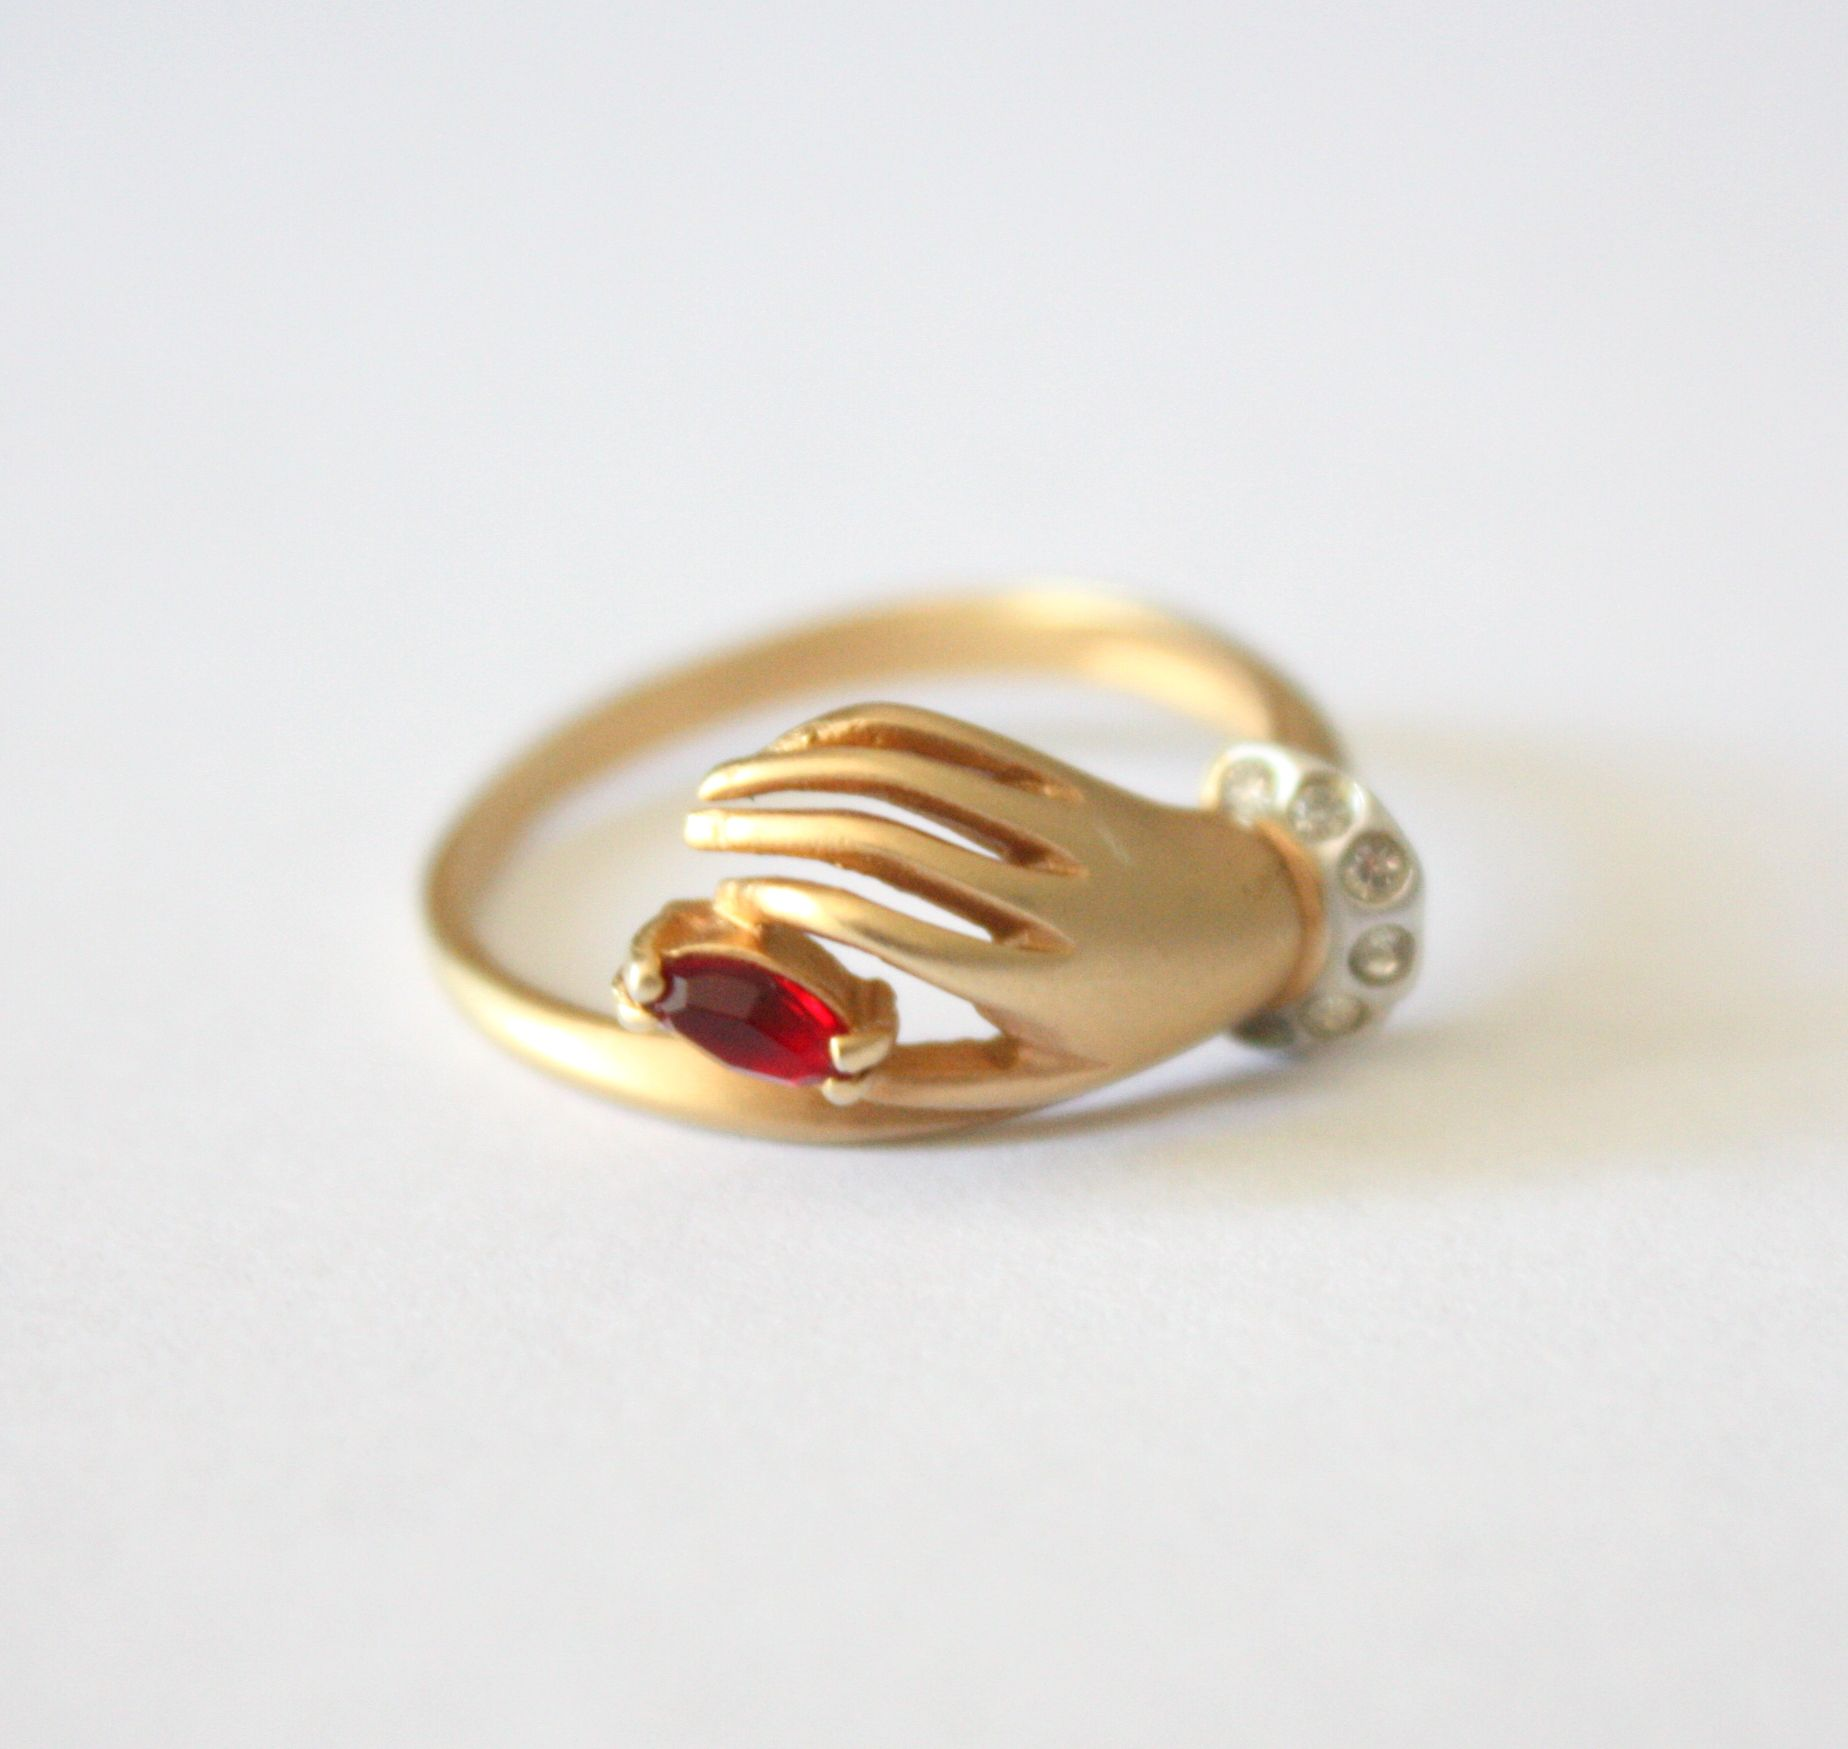 Vintage ruby hand ring kalmar ring and vintage